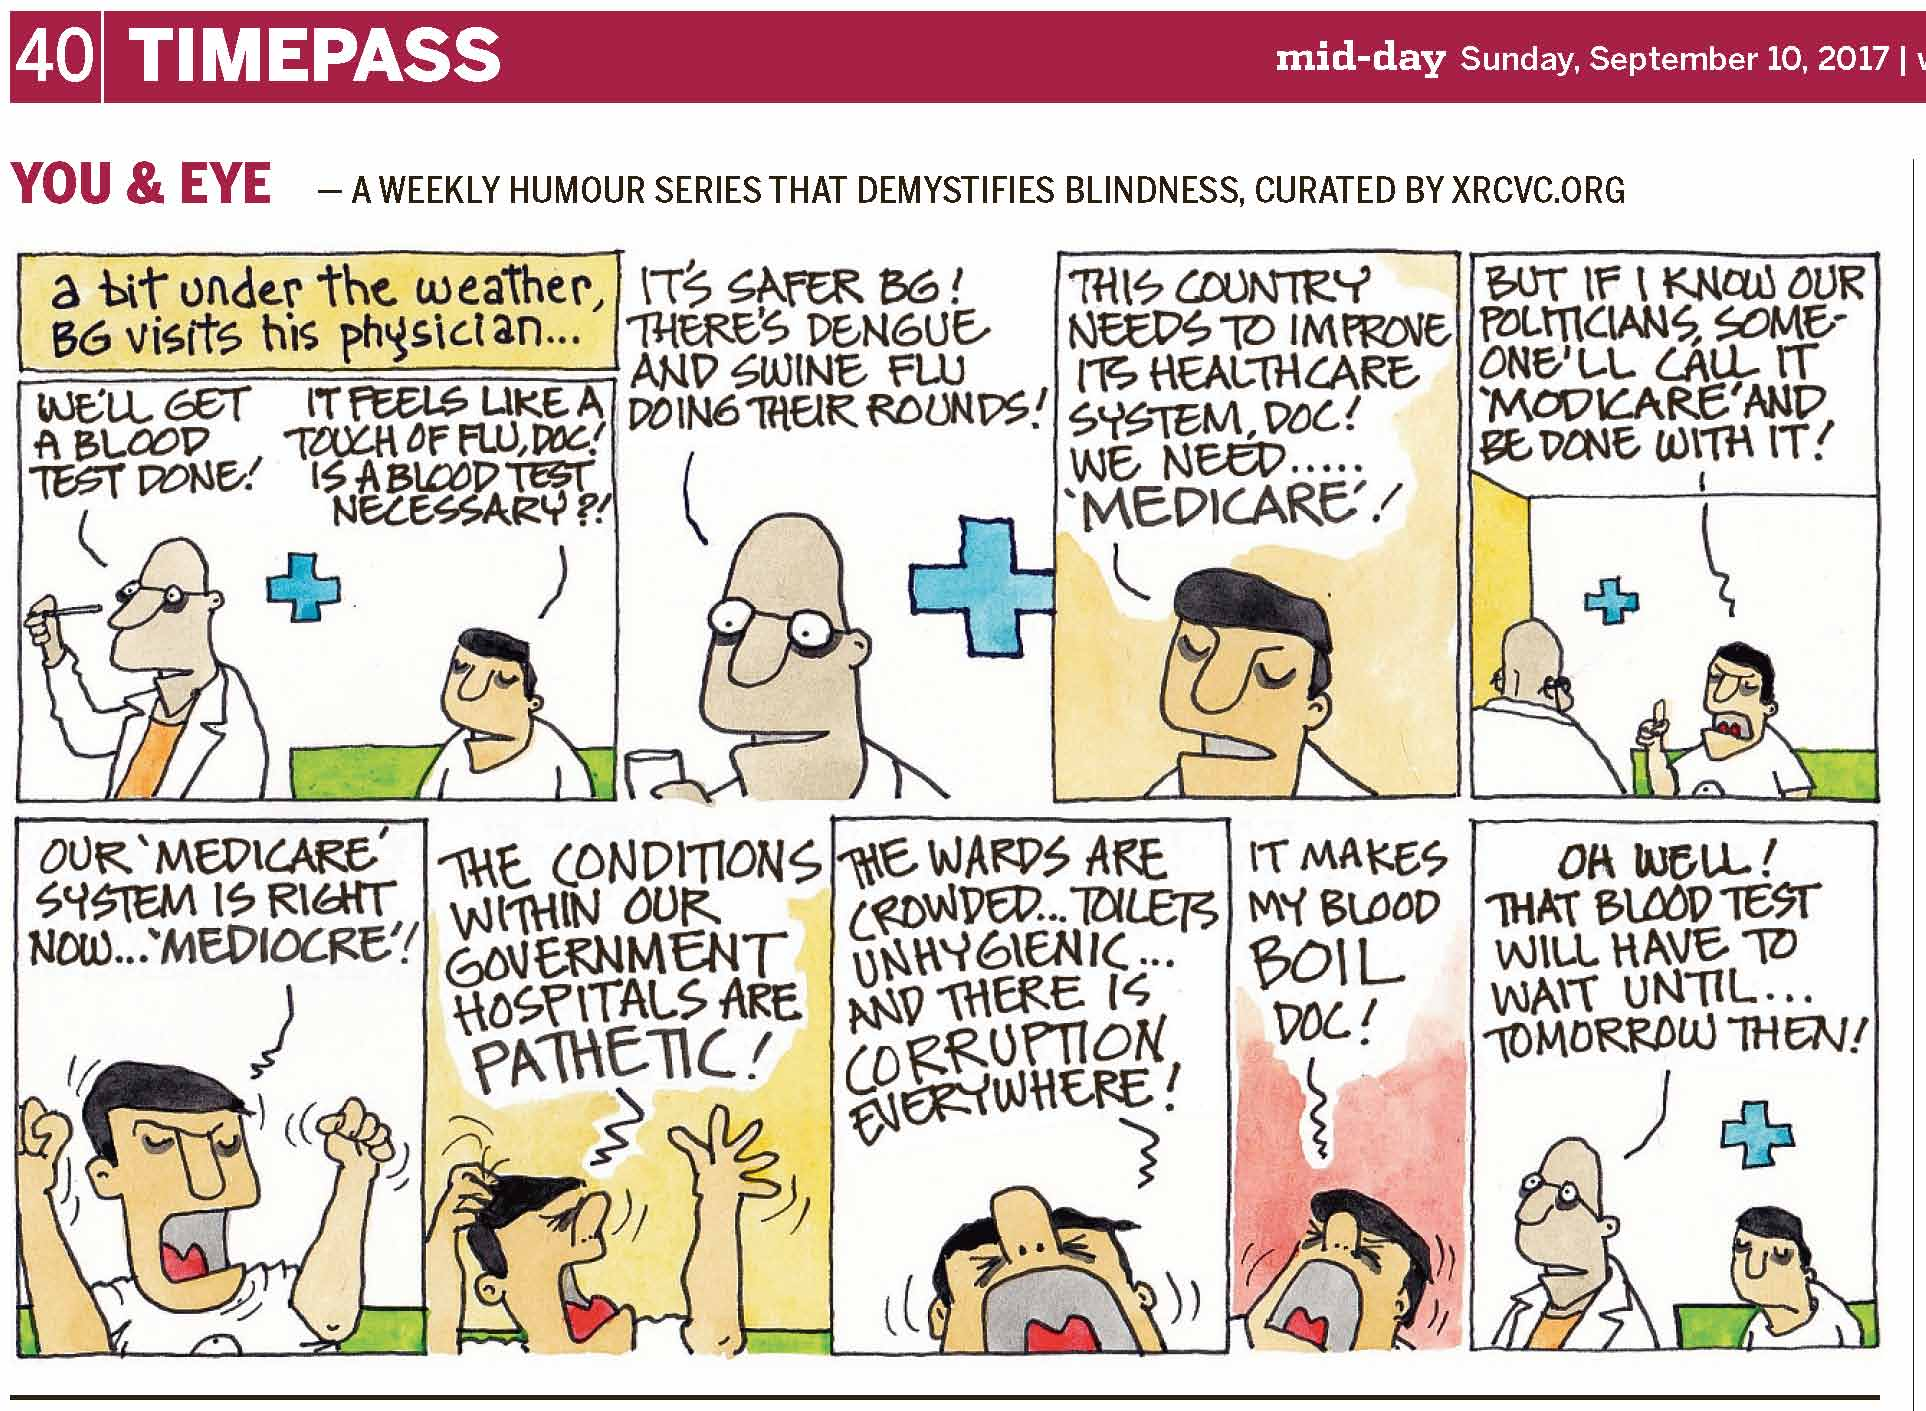 (top-left) 40 | TIMEPASS (top-right) mid-day Sunday, September 10, 2017 | YOU & EYE – A WEEKLY HUMOUR SERIES THAT DEMYSTIFIES BLINDNESS, CURATED BY XRCVC.ORG Image description: A cartoon strip with 9 frames… Frame 1: (A bespectacled bald man in a white coat, possibly a doctor, is seen standing and holding what appears to be a thermometer horizontally in front of his face, at eye-level. BG is seated a little behind him on a green sofa. In the background is seen a blue cross as a medical symbol.) Text: A bit under the weather, BG visits his physician… Doctor: We'll get a blood test done! BG: It feels like a touch of flu, Doc! Is a blood test necessary?! Frame 2: (A close-up of the doctor who appears to be holding some paper in his hand. The blue cross is seen in the background.) Doctor: It's safer BG! There's Dengue and Swine Flu doing their rounds! Frame 3: (A close-up of BG) BG: This country needs to improve its healthcare system, Doc! Frame 4: (BG raises the index finger of his right hand upwards while his mouth is wide open such that his tongue can be seen; he seems quite irritated. The doctor is seen from the back, looking towards BG. The blue cross is seen in the background.) BG: But if I know our politicians, someone'll call it 'Modicare' and be done with it! Frame 5: (A close-up of BG with his mouth open wide to show his tongue, and both his hands making a fist and raised up high. Short curved lines near his hands and head represent movement.) BG: Our 'Medicare' system is right now… 'Mediocre'! Frame 6: (A close-up of BG with his hands raised up – the fingers of his left hand are spread out upwards, and the fingers of the right hand are on the top of his head, while he looks towards his left with eyes tightly closed, and appears to be screaming. Short curved lines around him represent movement of his hands and head.) BG: The conditions within our government hospitals are pathetic! Frame 7: